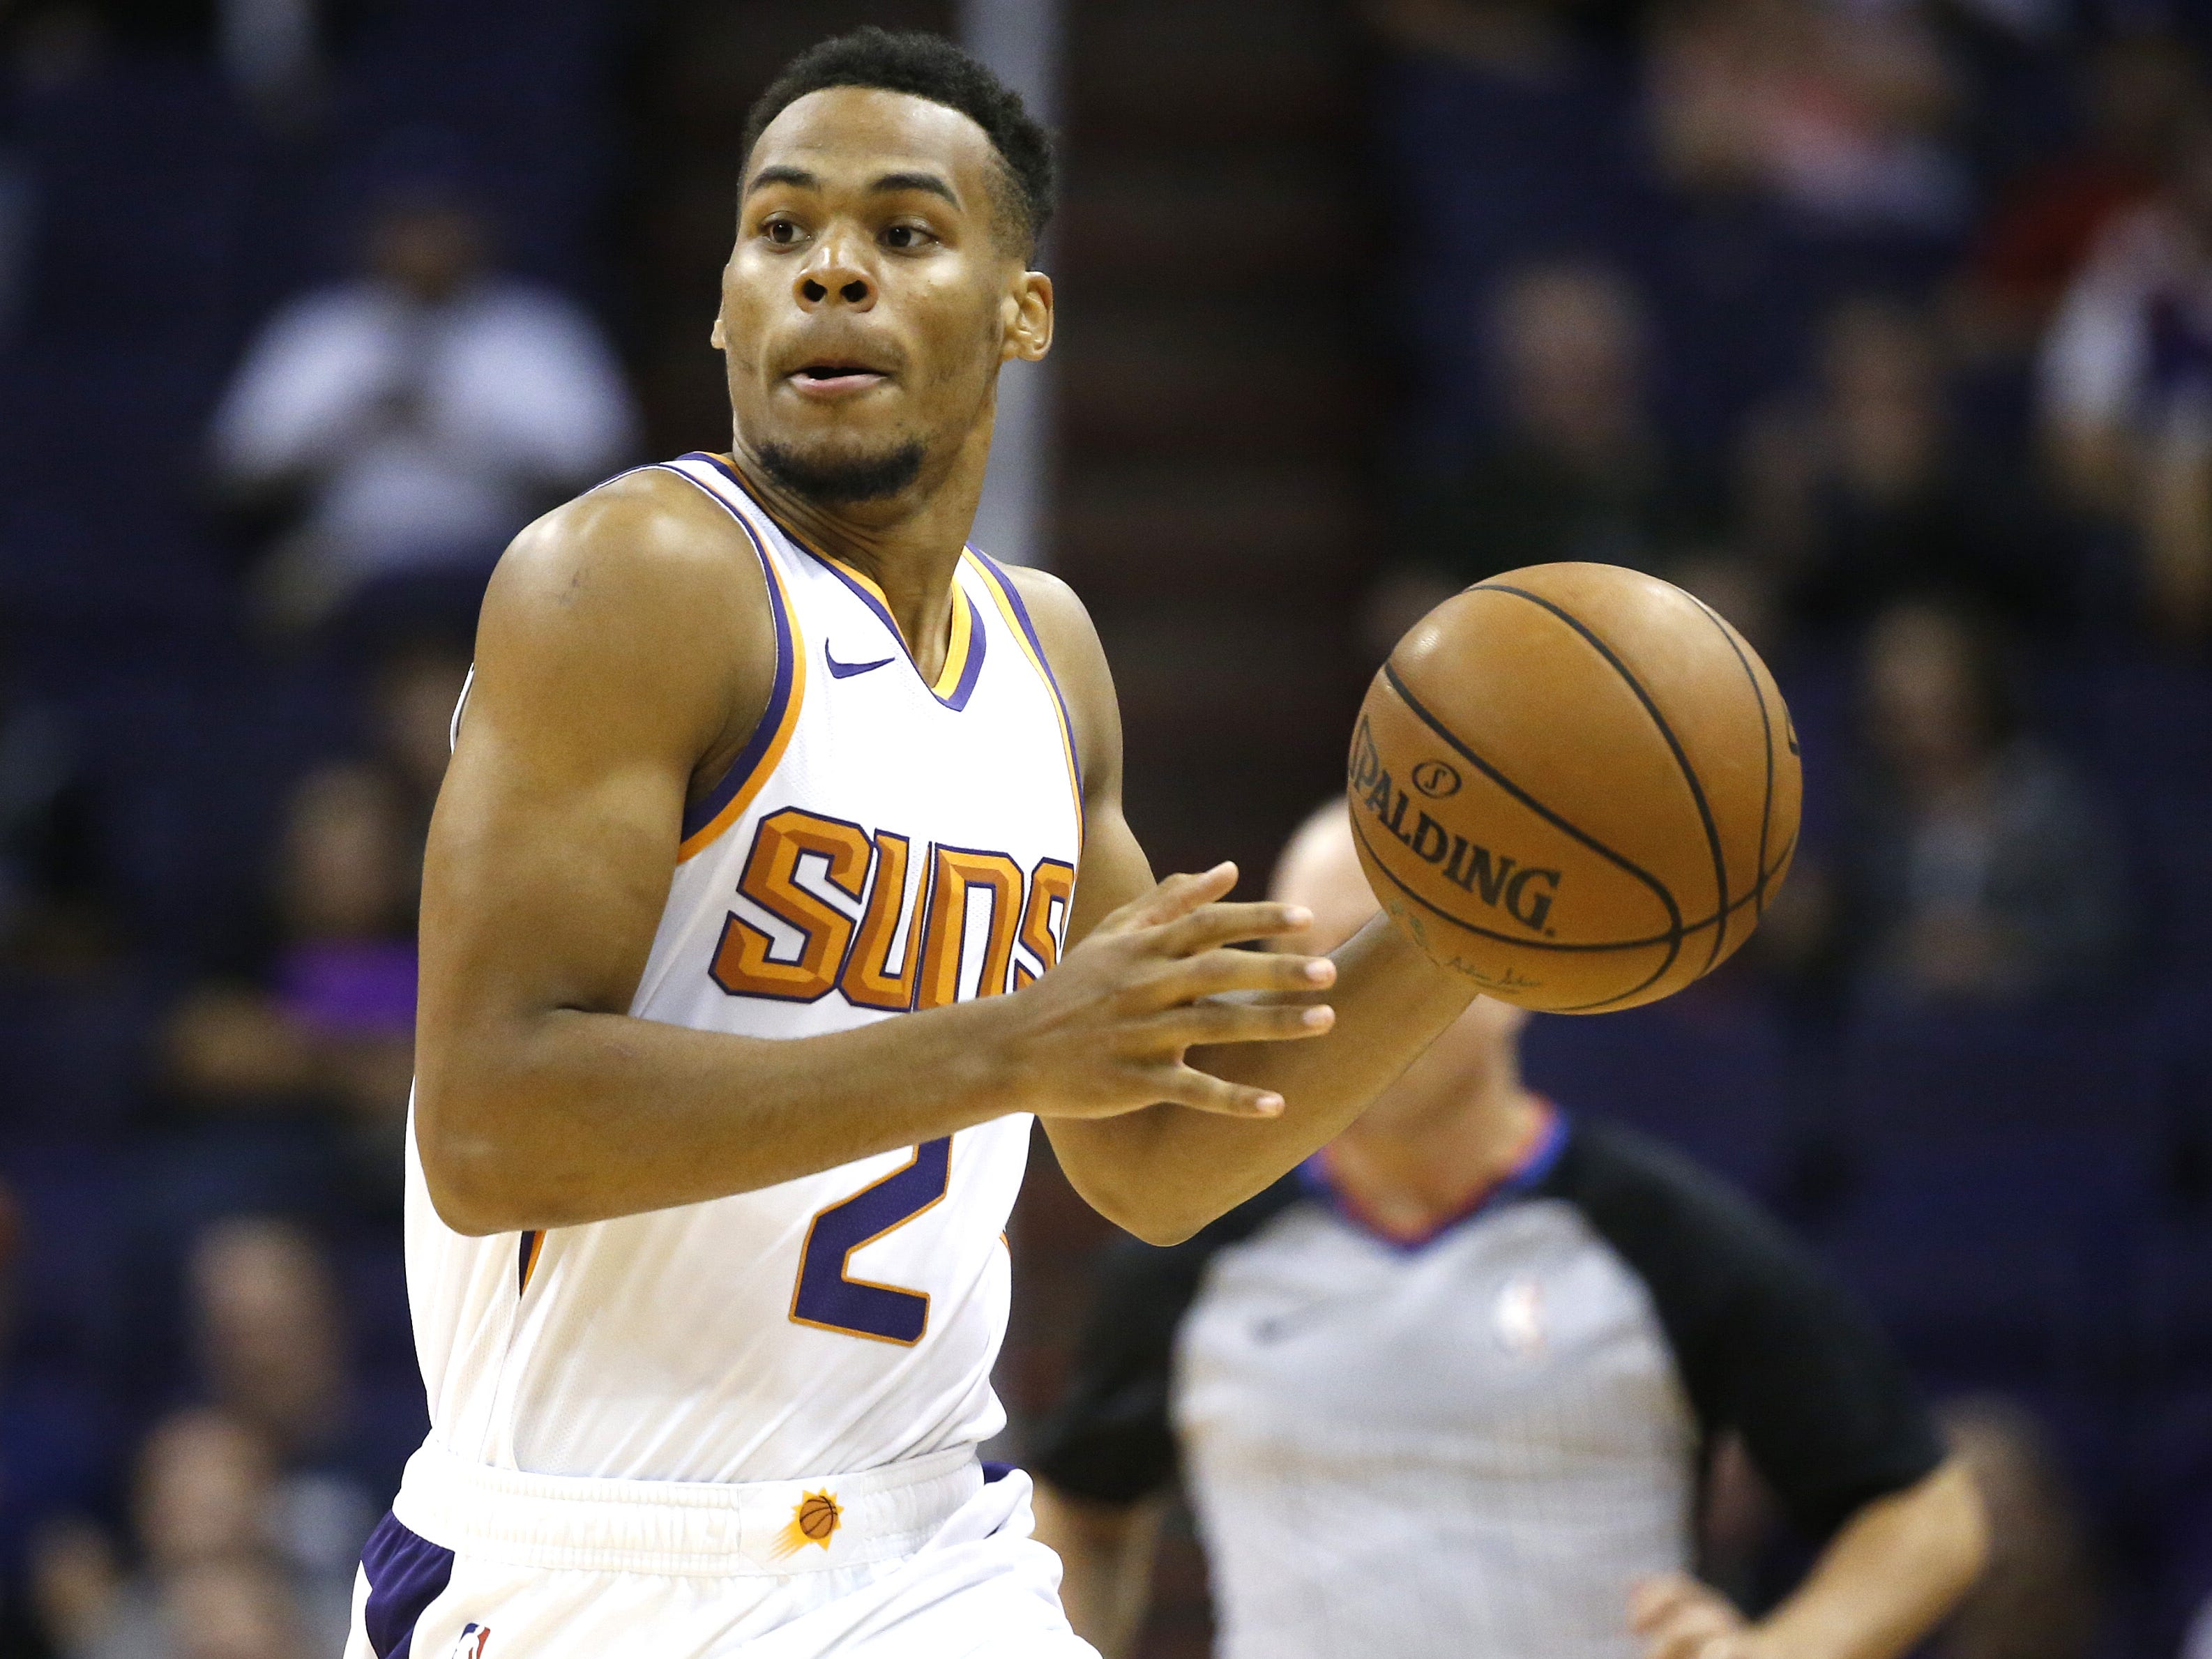 Suns Elie Okobo (2) dribbles up the court against the Kings during the first half at Talking Stick Resort Arena in Phoenix, Ariz. on October 1, 2018.